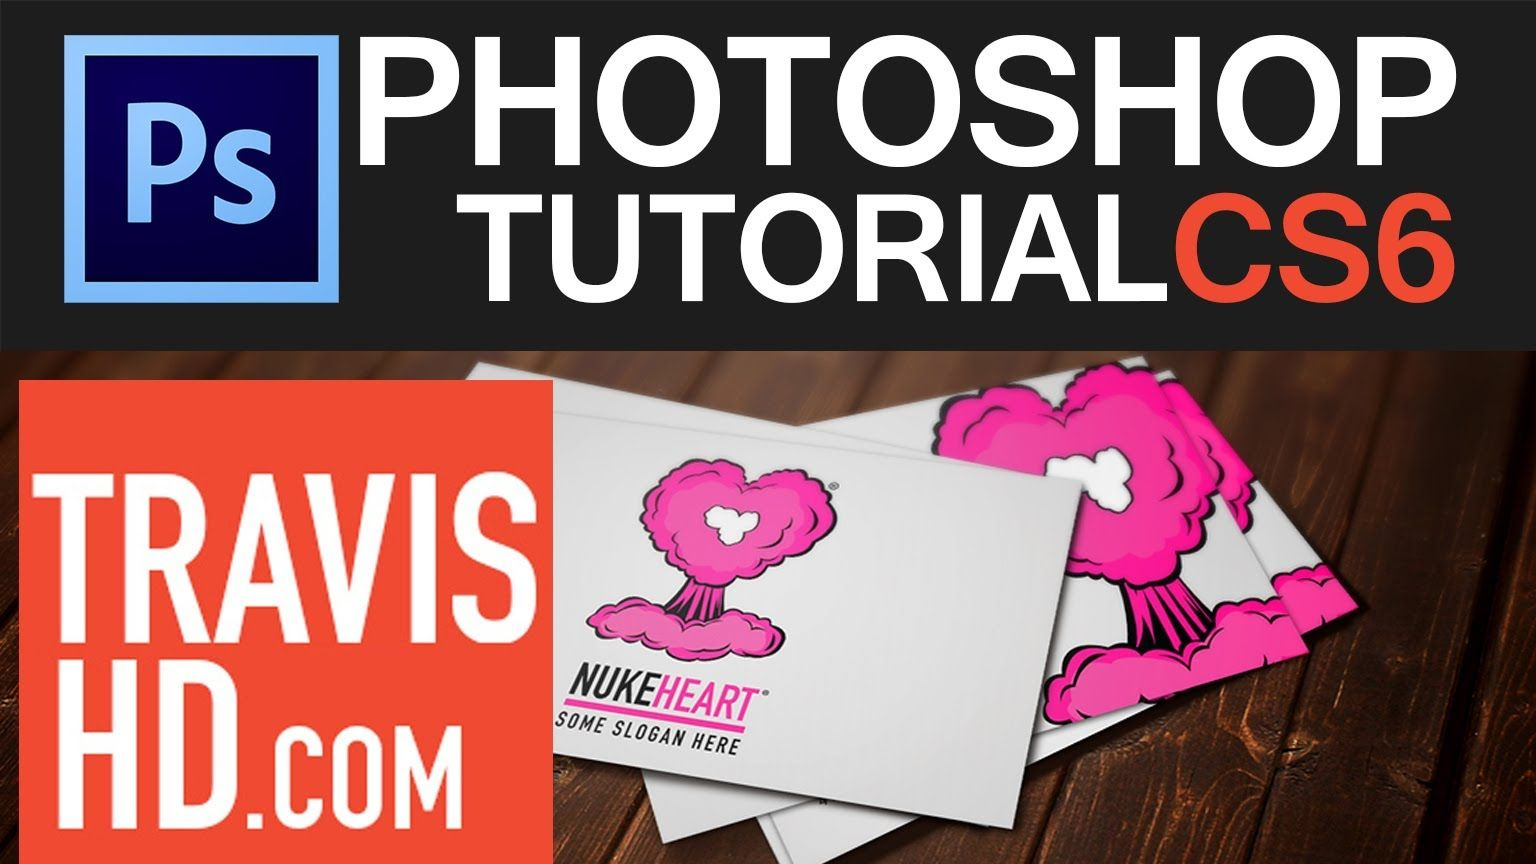 Business card mockup photoshop tutorial and psd photoshop business card mockup photoshop tutorial and psd reheart Images